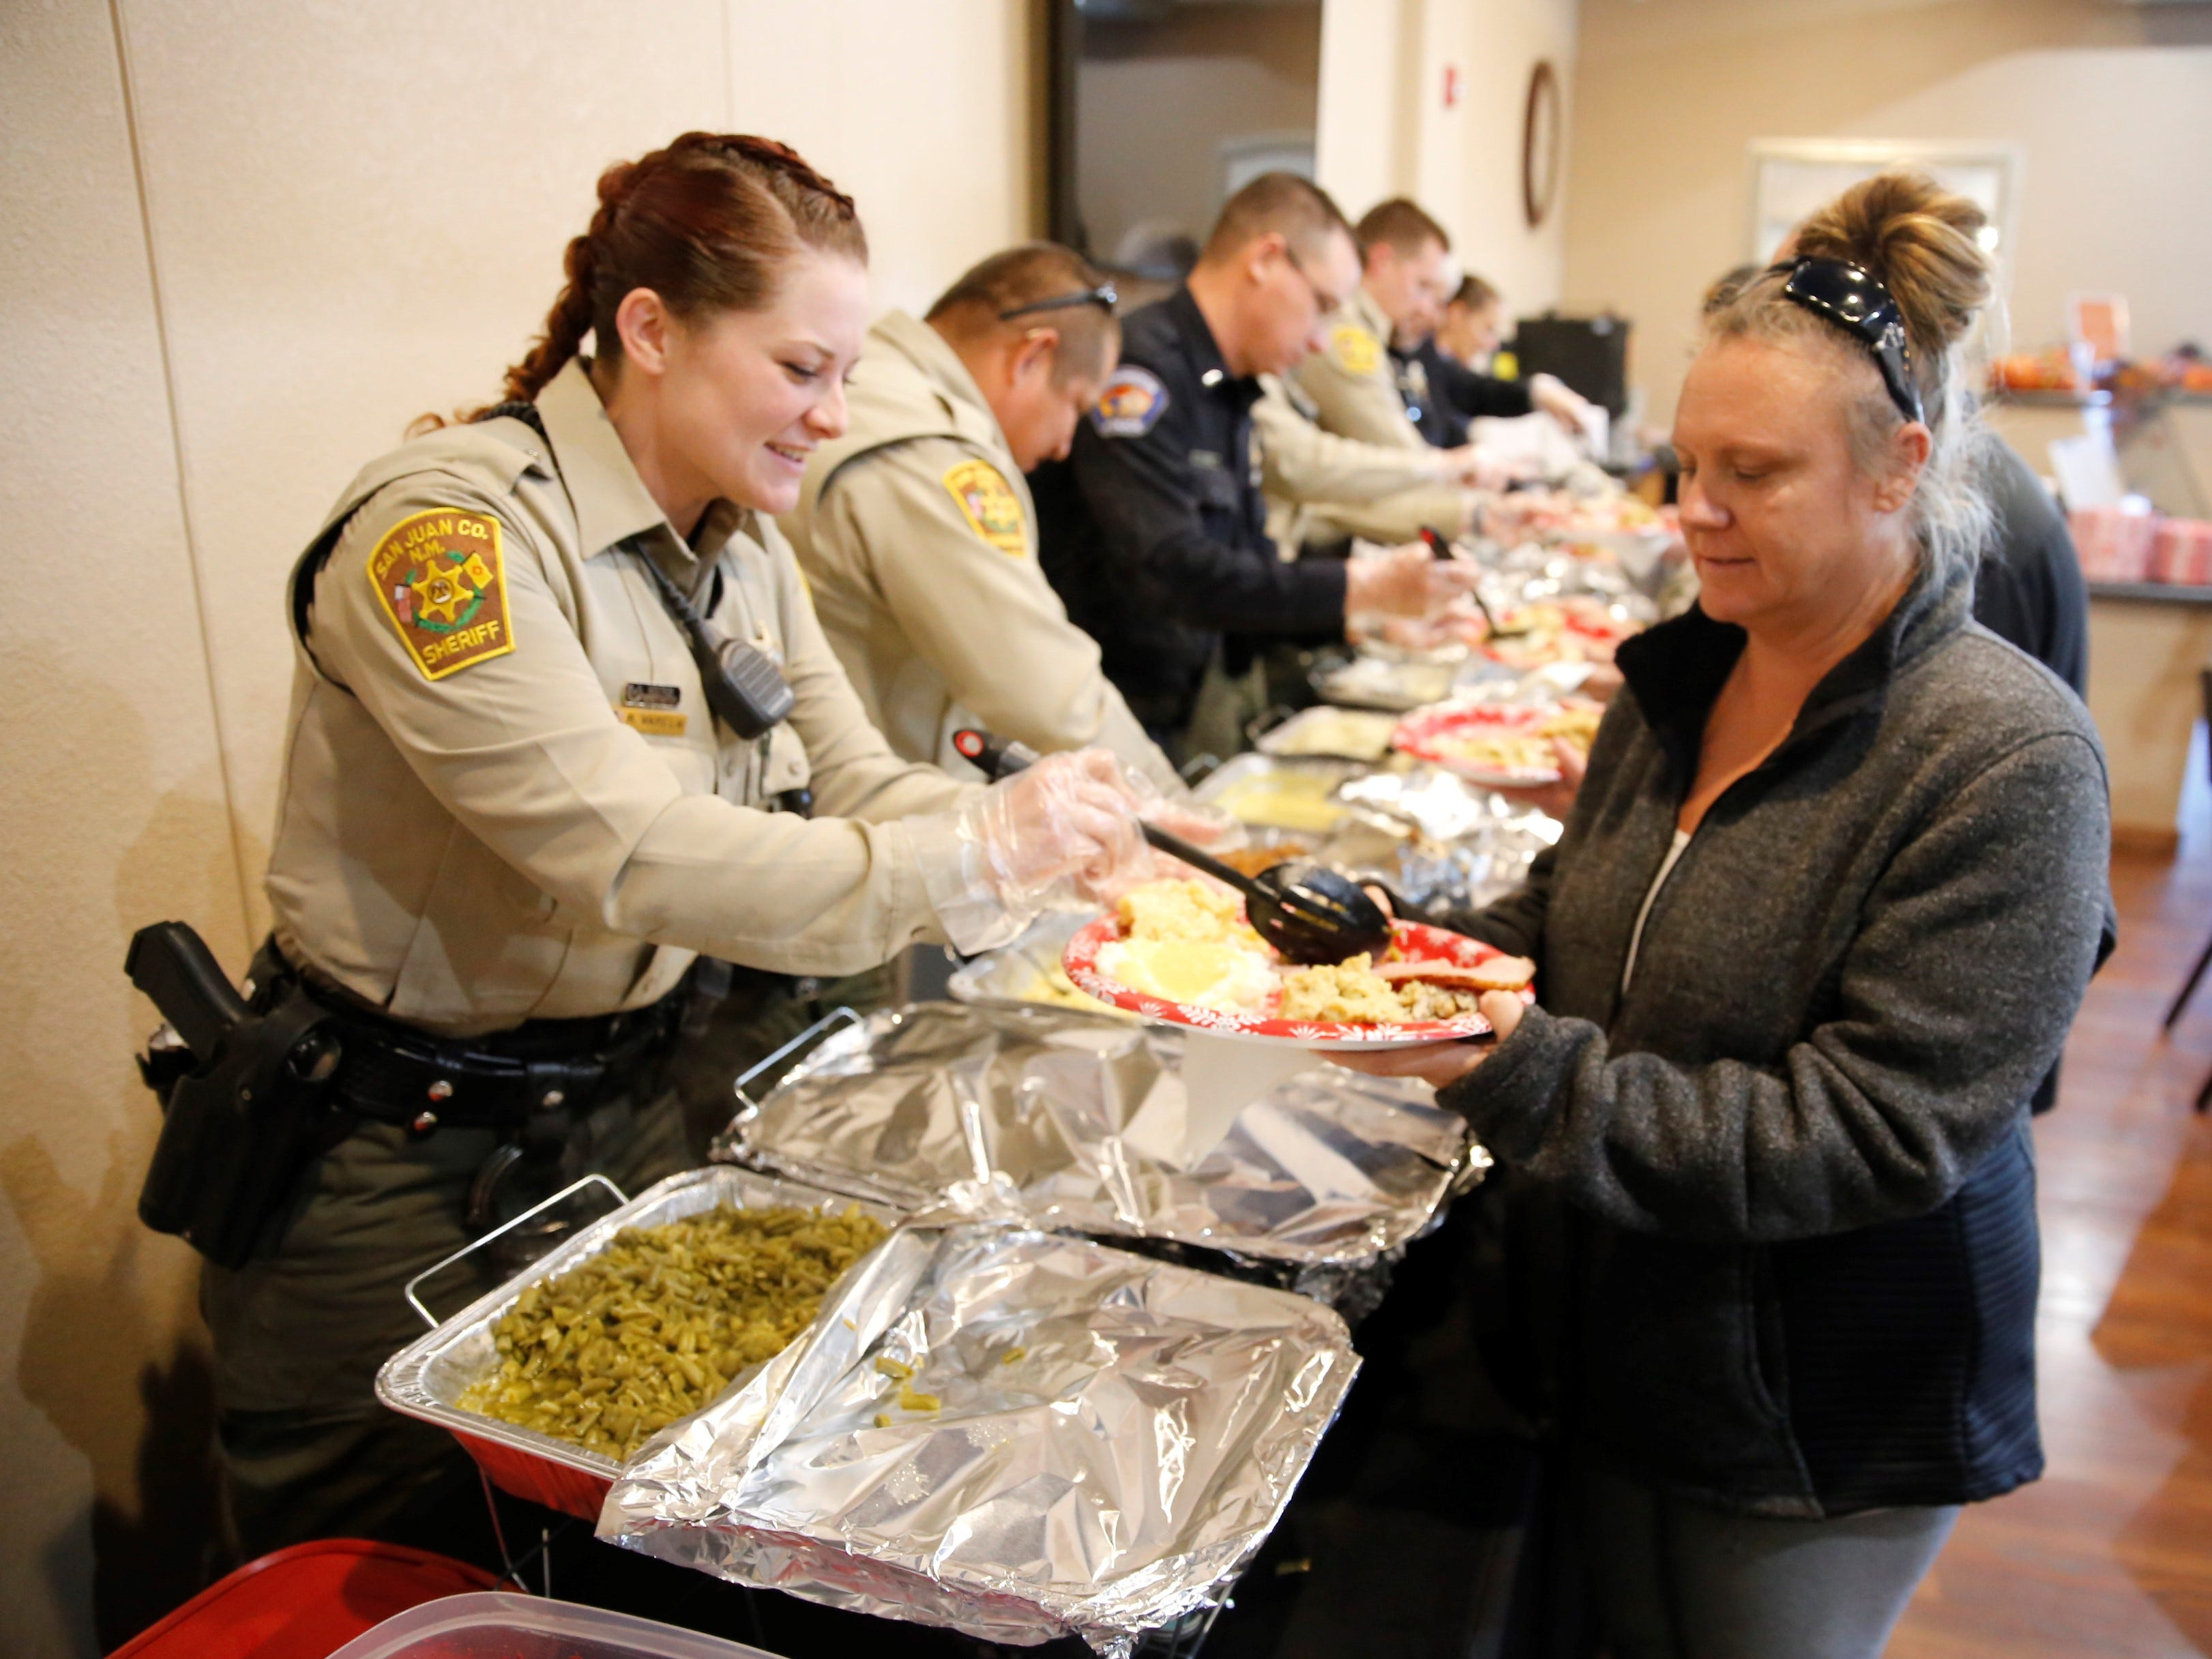 San Juan County Sheriff's Office Deputy Robin Varela, left, serves green beans to Amber Norman during a Thanksgiving meal Tuesday afternoon at Oasis Church in Farmington. The San Juan County Juvenile Services program, Desert View Family Counseling and Cottonwood Clinical Services hosted the meal.